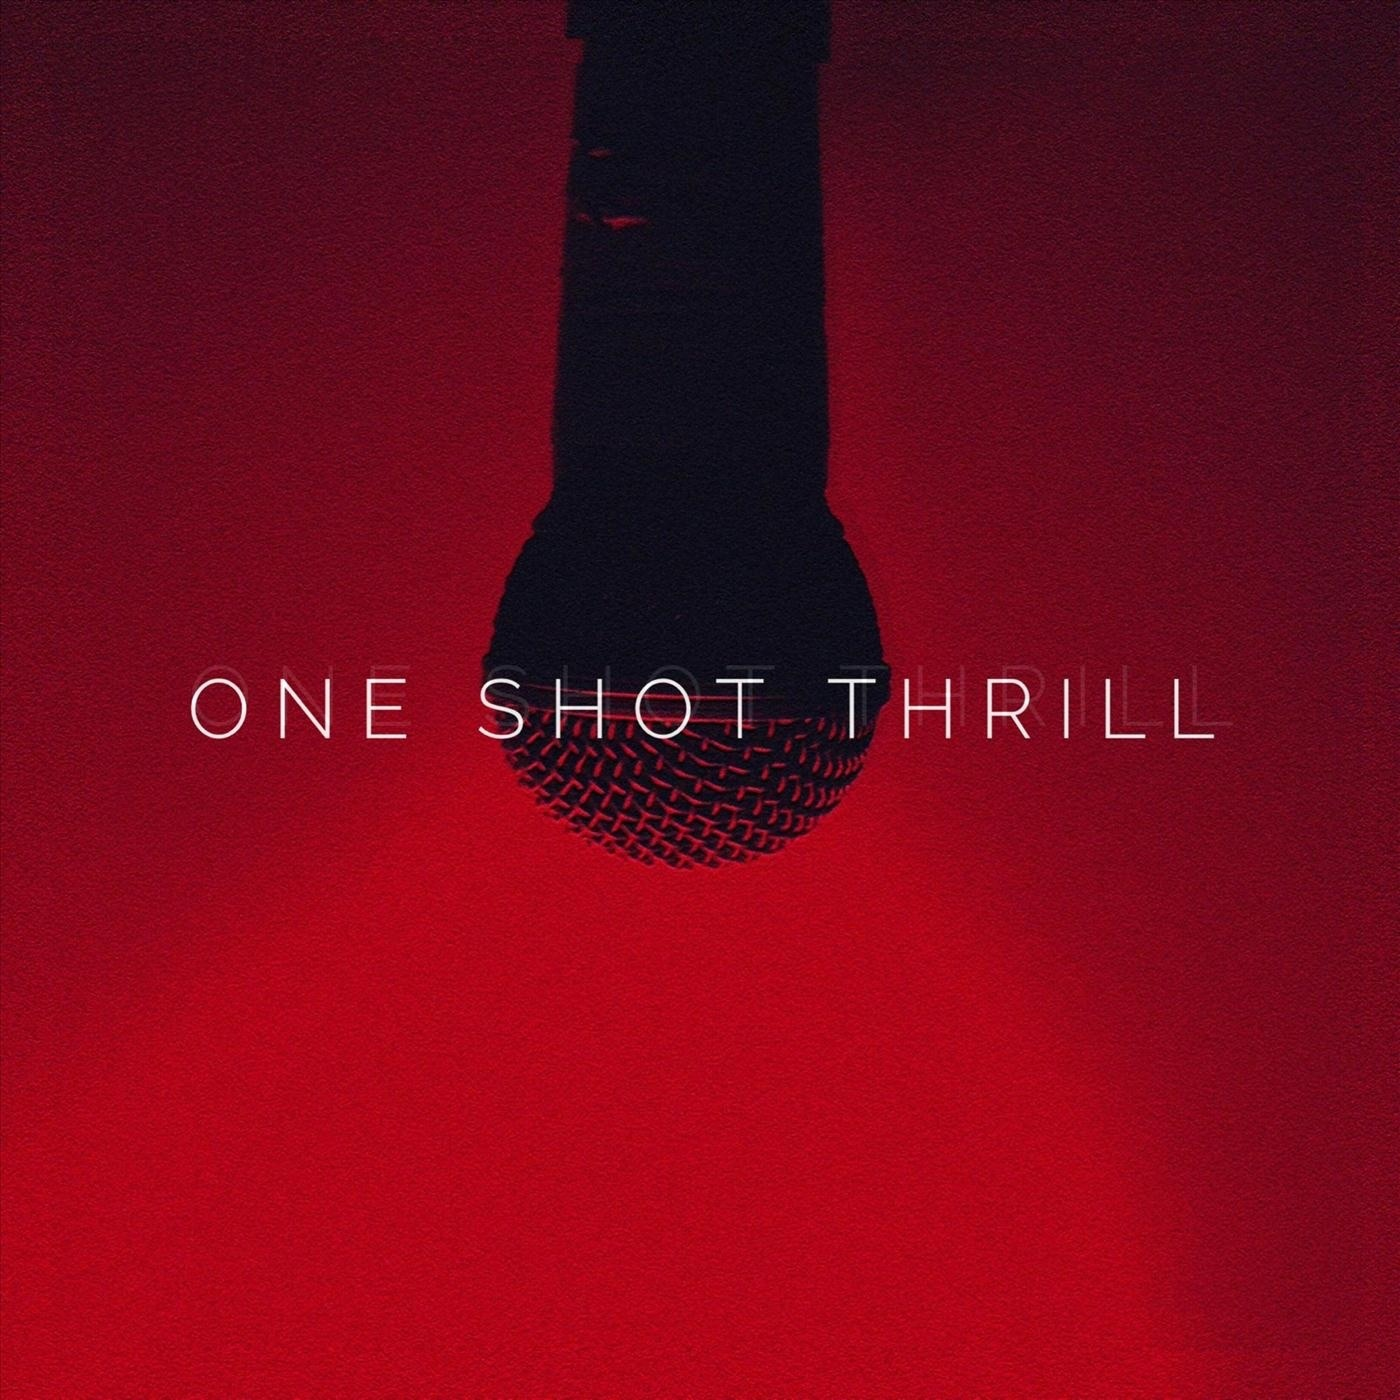 One Shot Thrill - One Shot Thrill [EP] (2018)